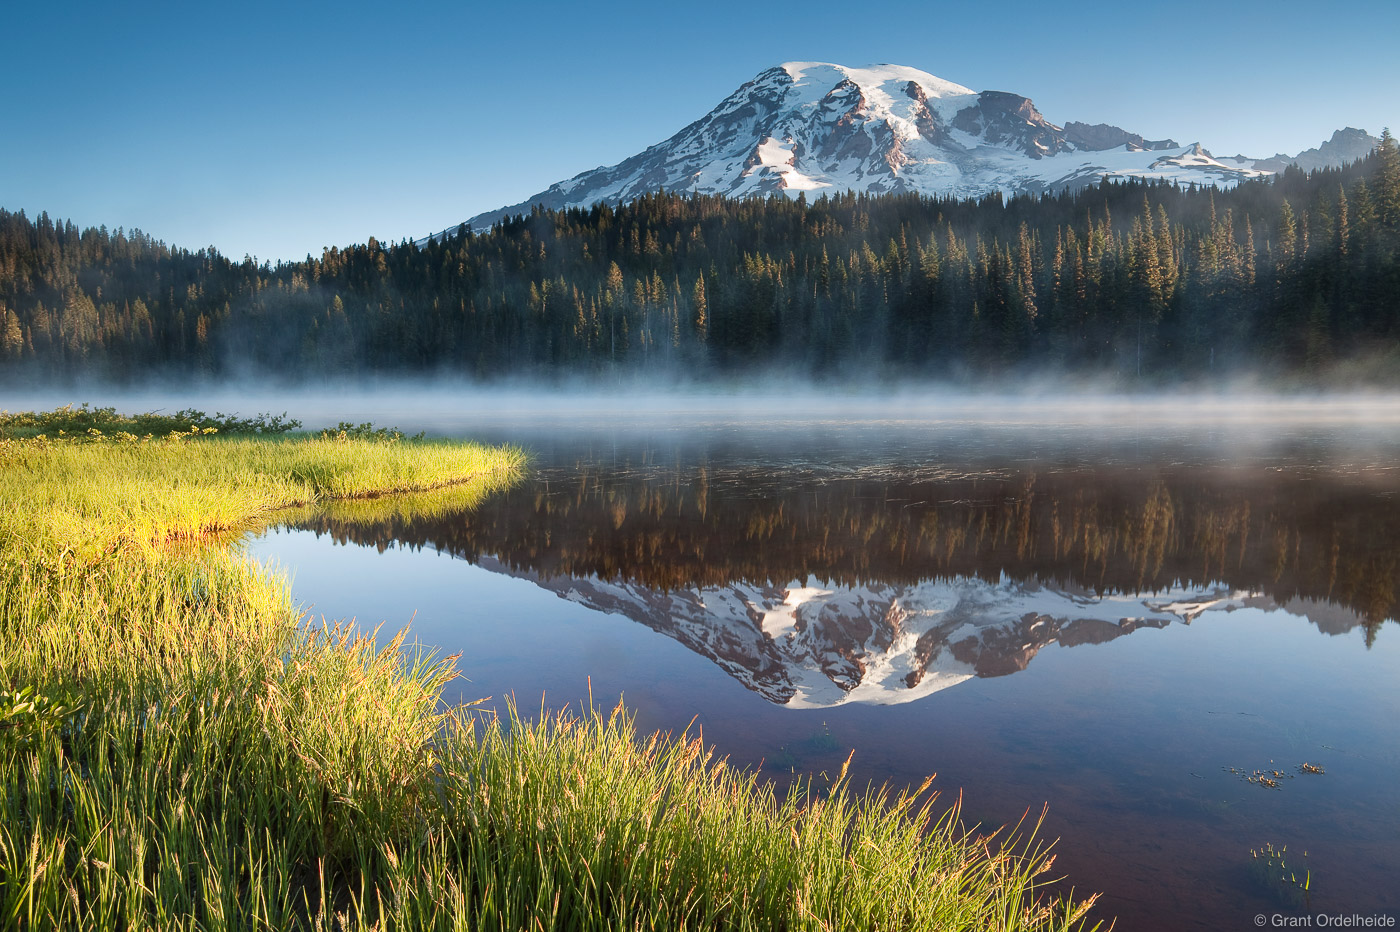 Early morning light on the grass of Reflection Lakes near Paradise in Mt. Rainier National Park.